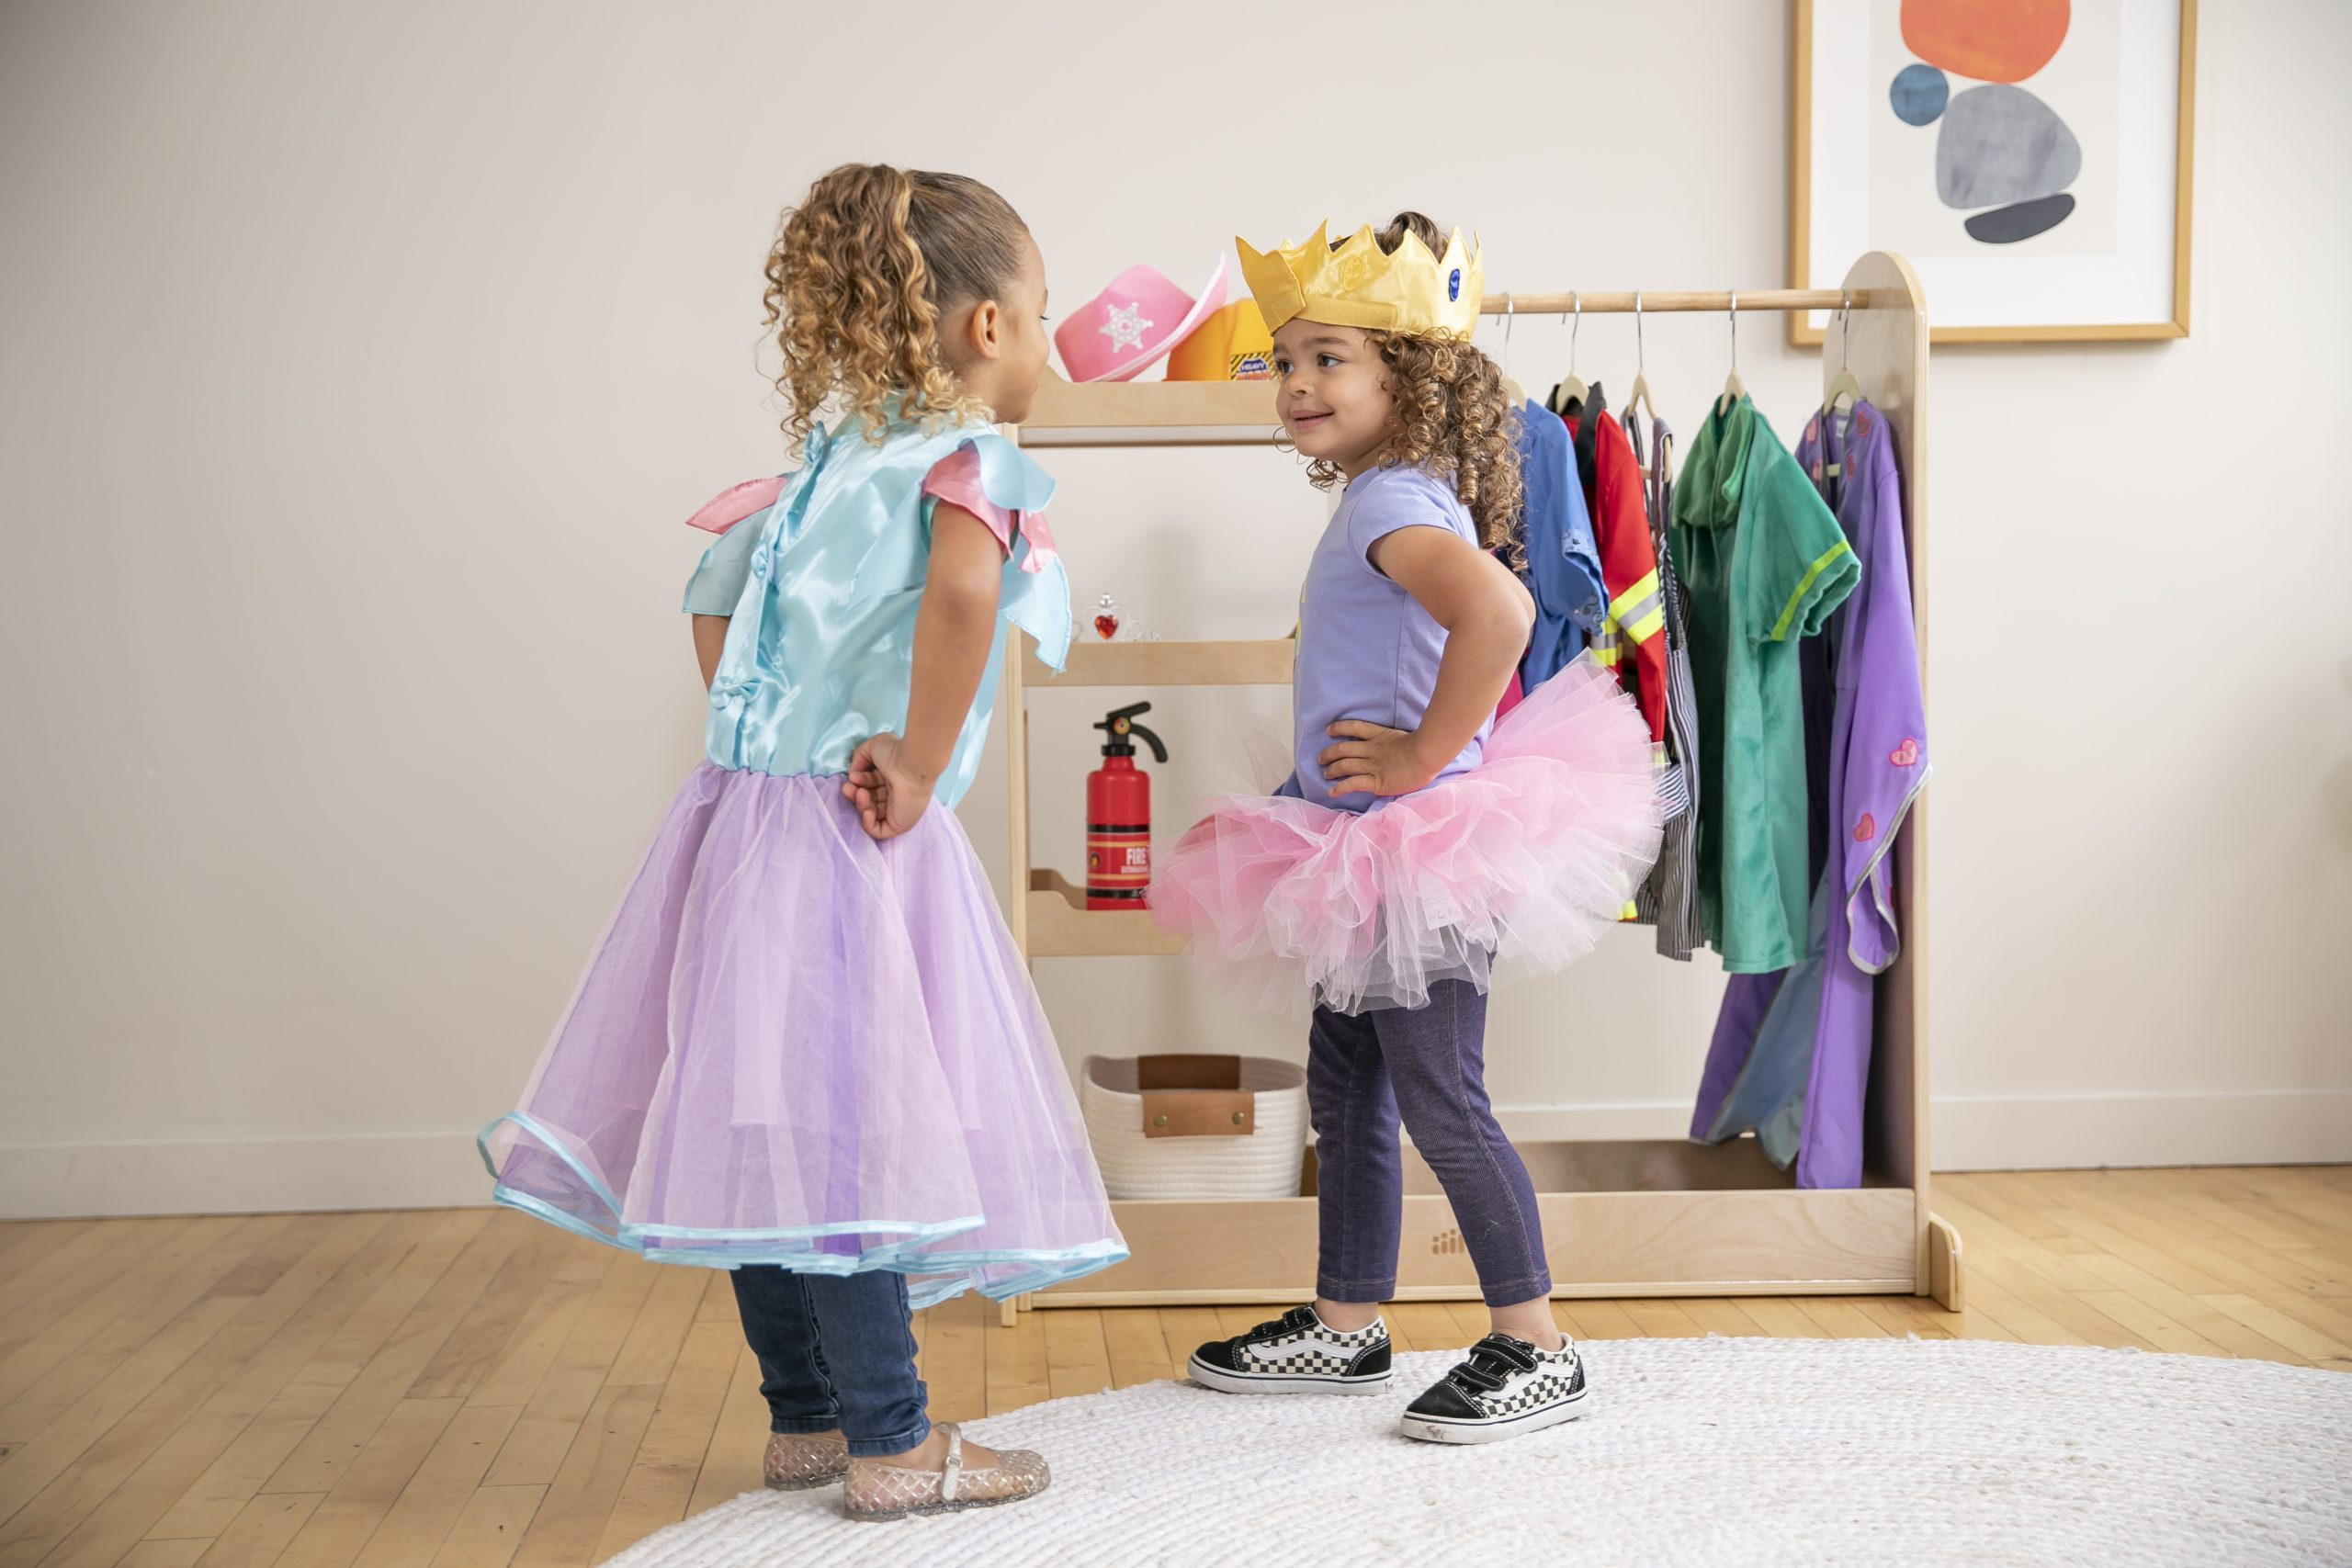 Importance of Imaginative Play